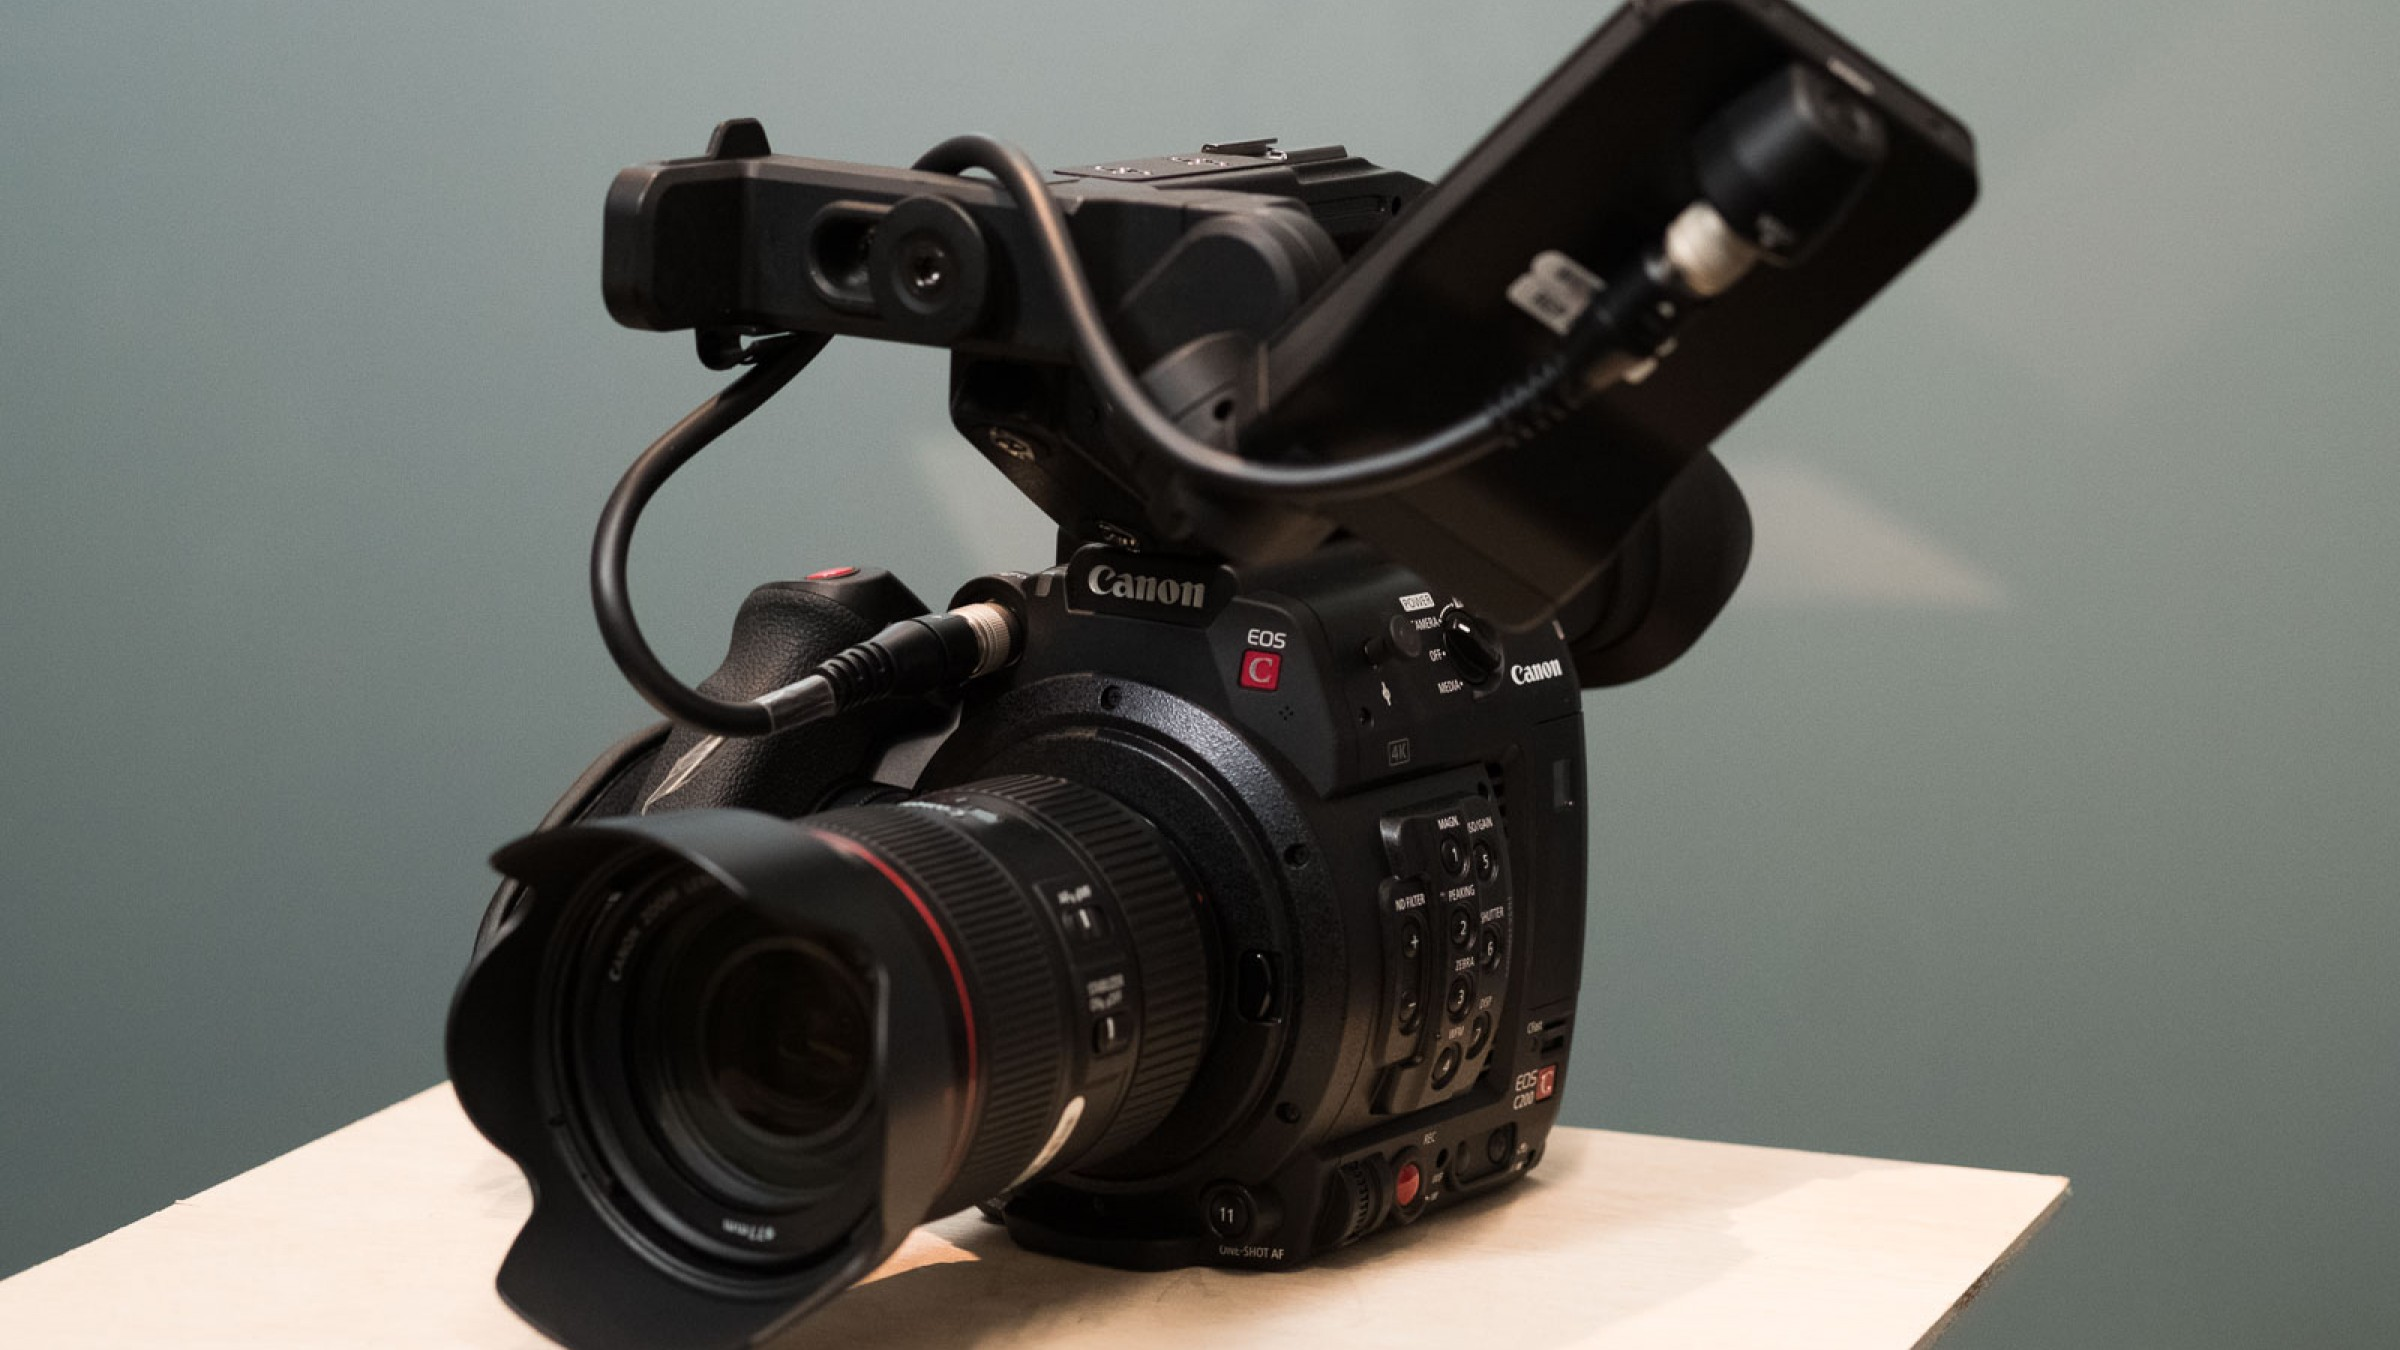 REVIEW: Canon C200 Offers a Major Step Up in Image Quality